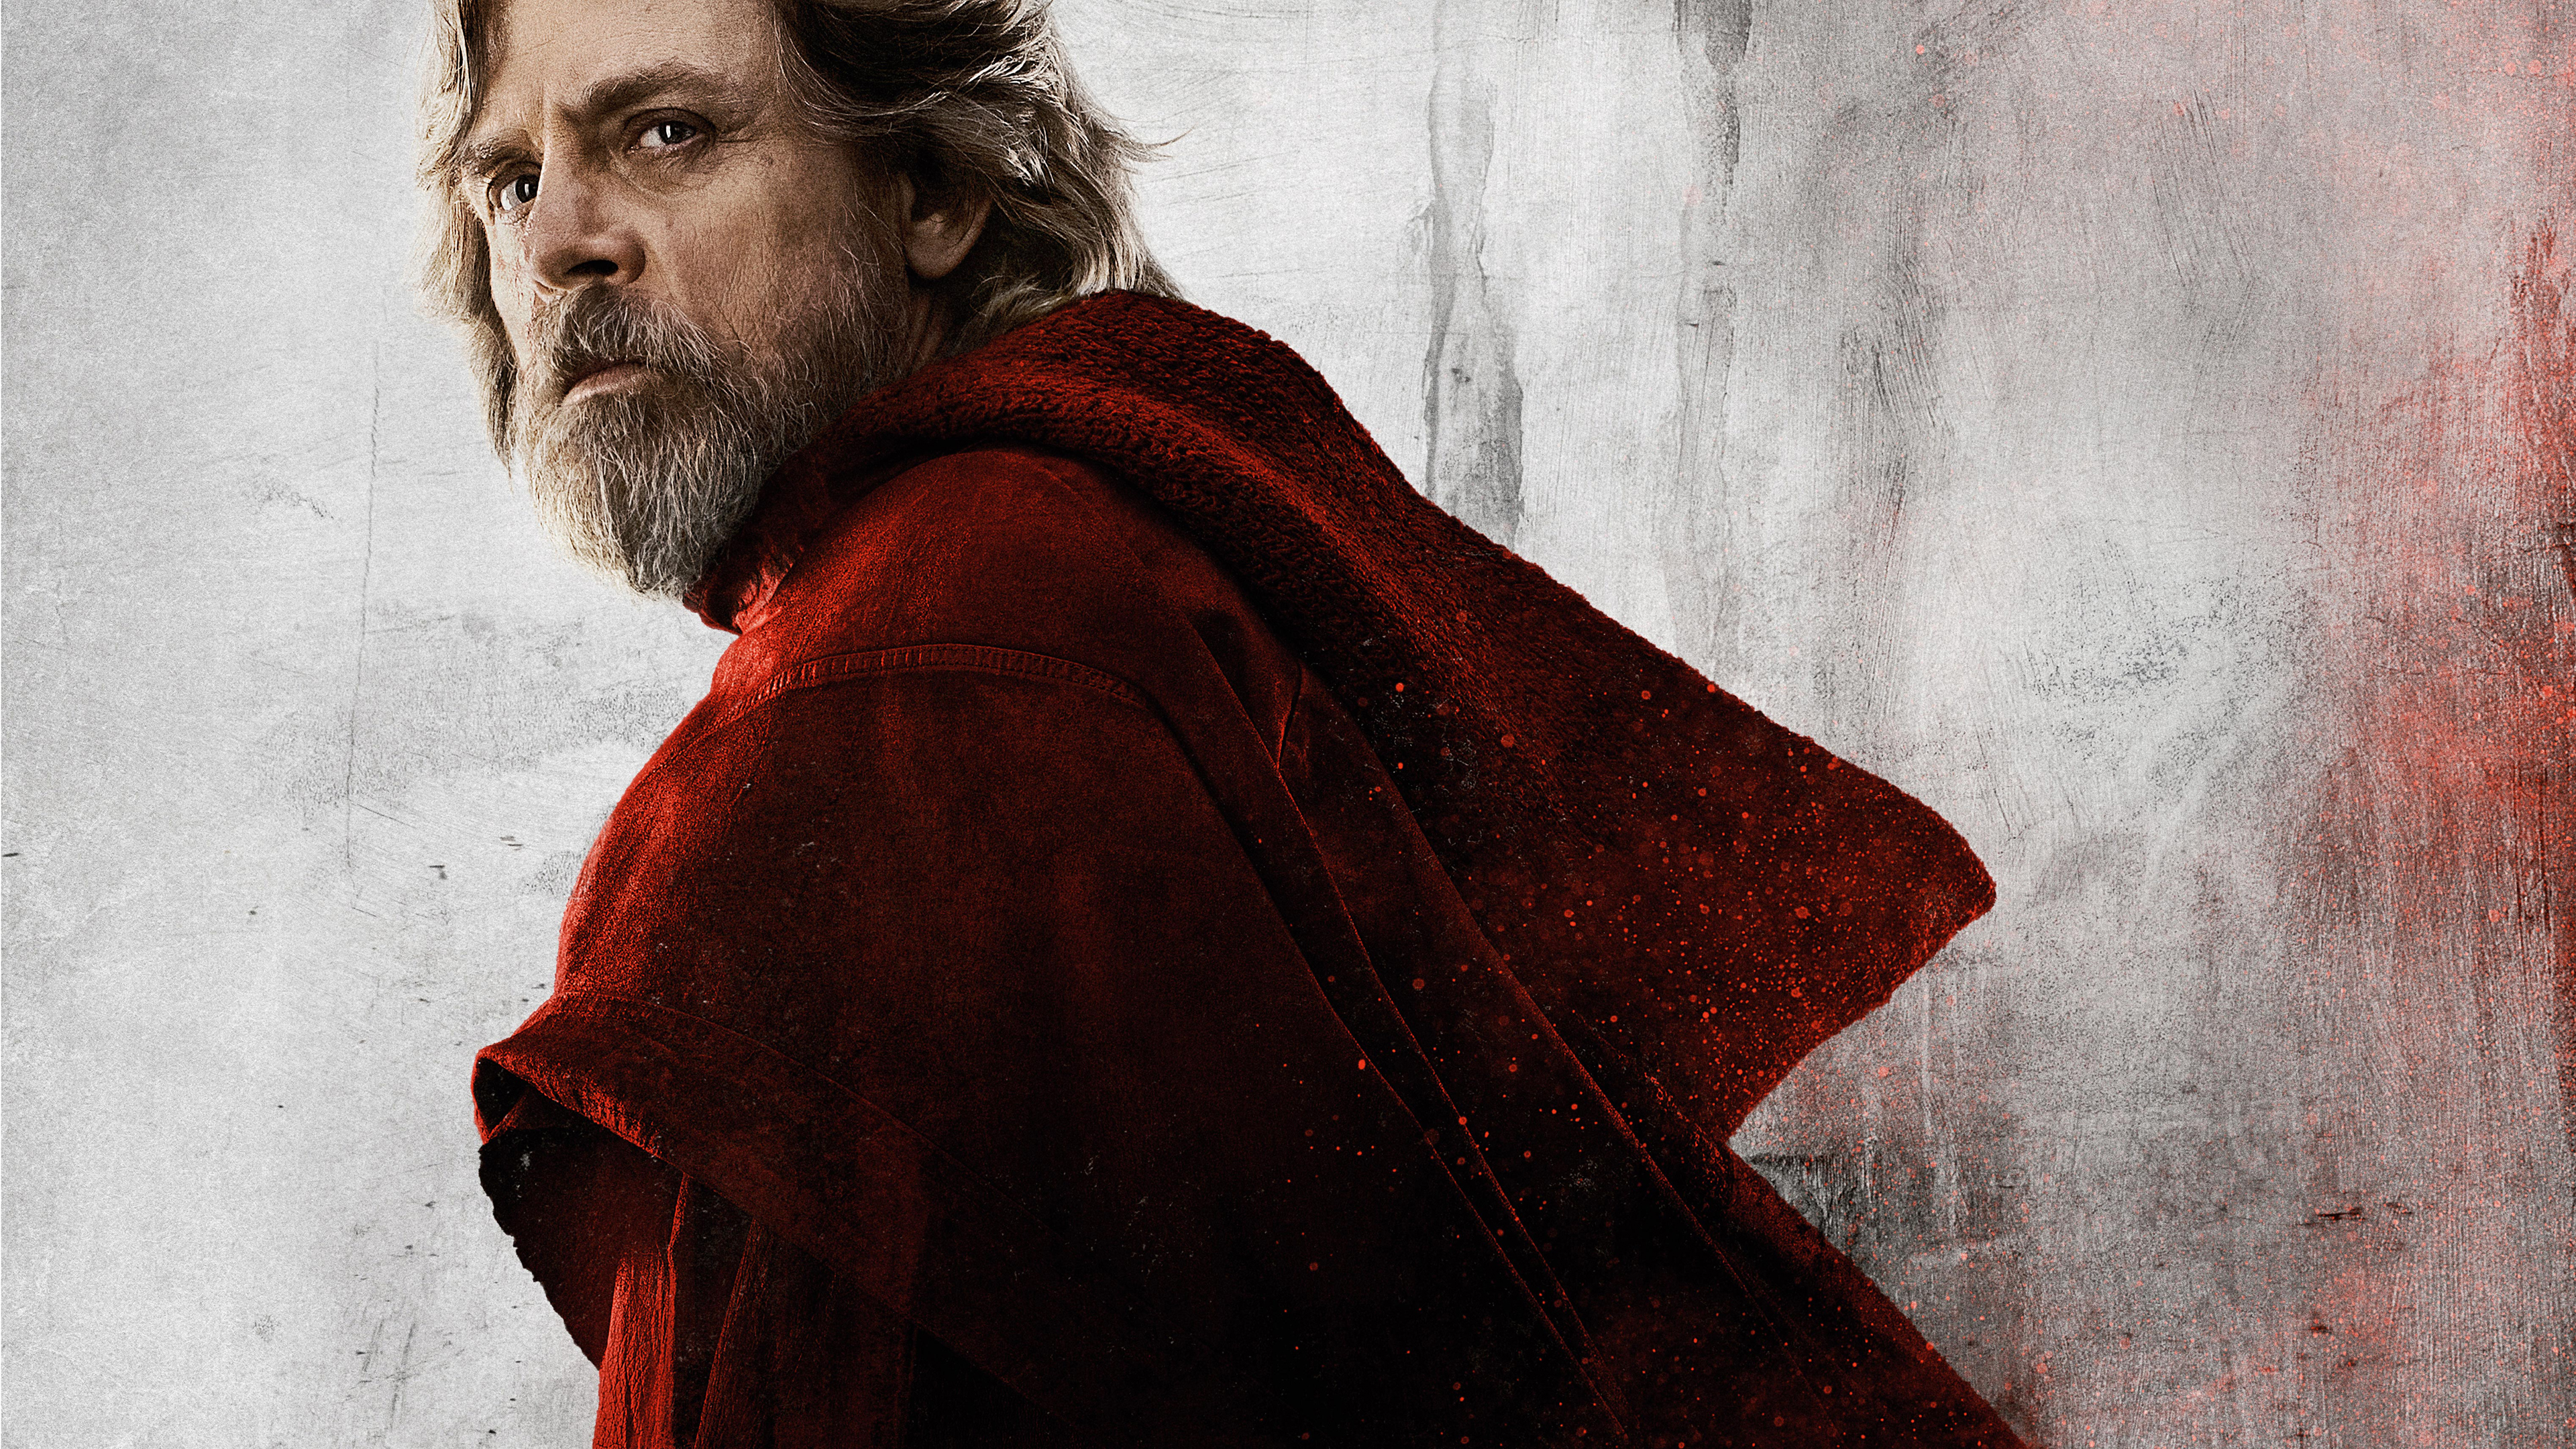 Luke Skywalker Star Wars Star Wars The Last Jedi Luke 373891 Hd Wallpaper Backgrounds Download